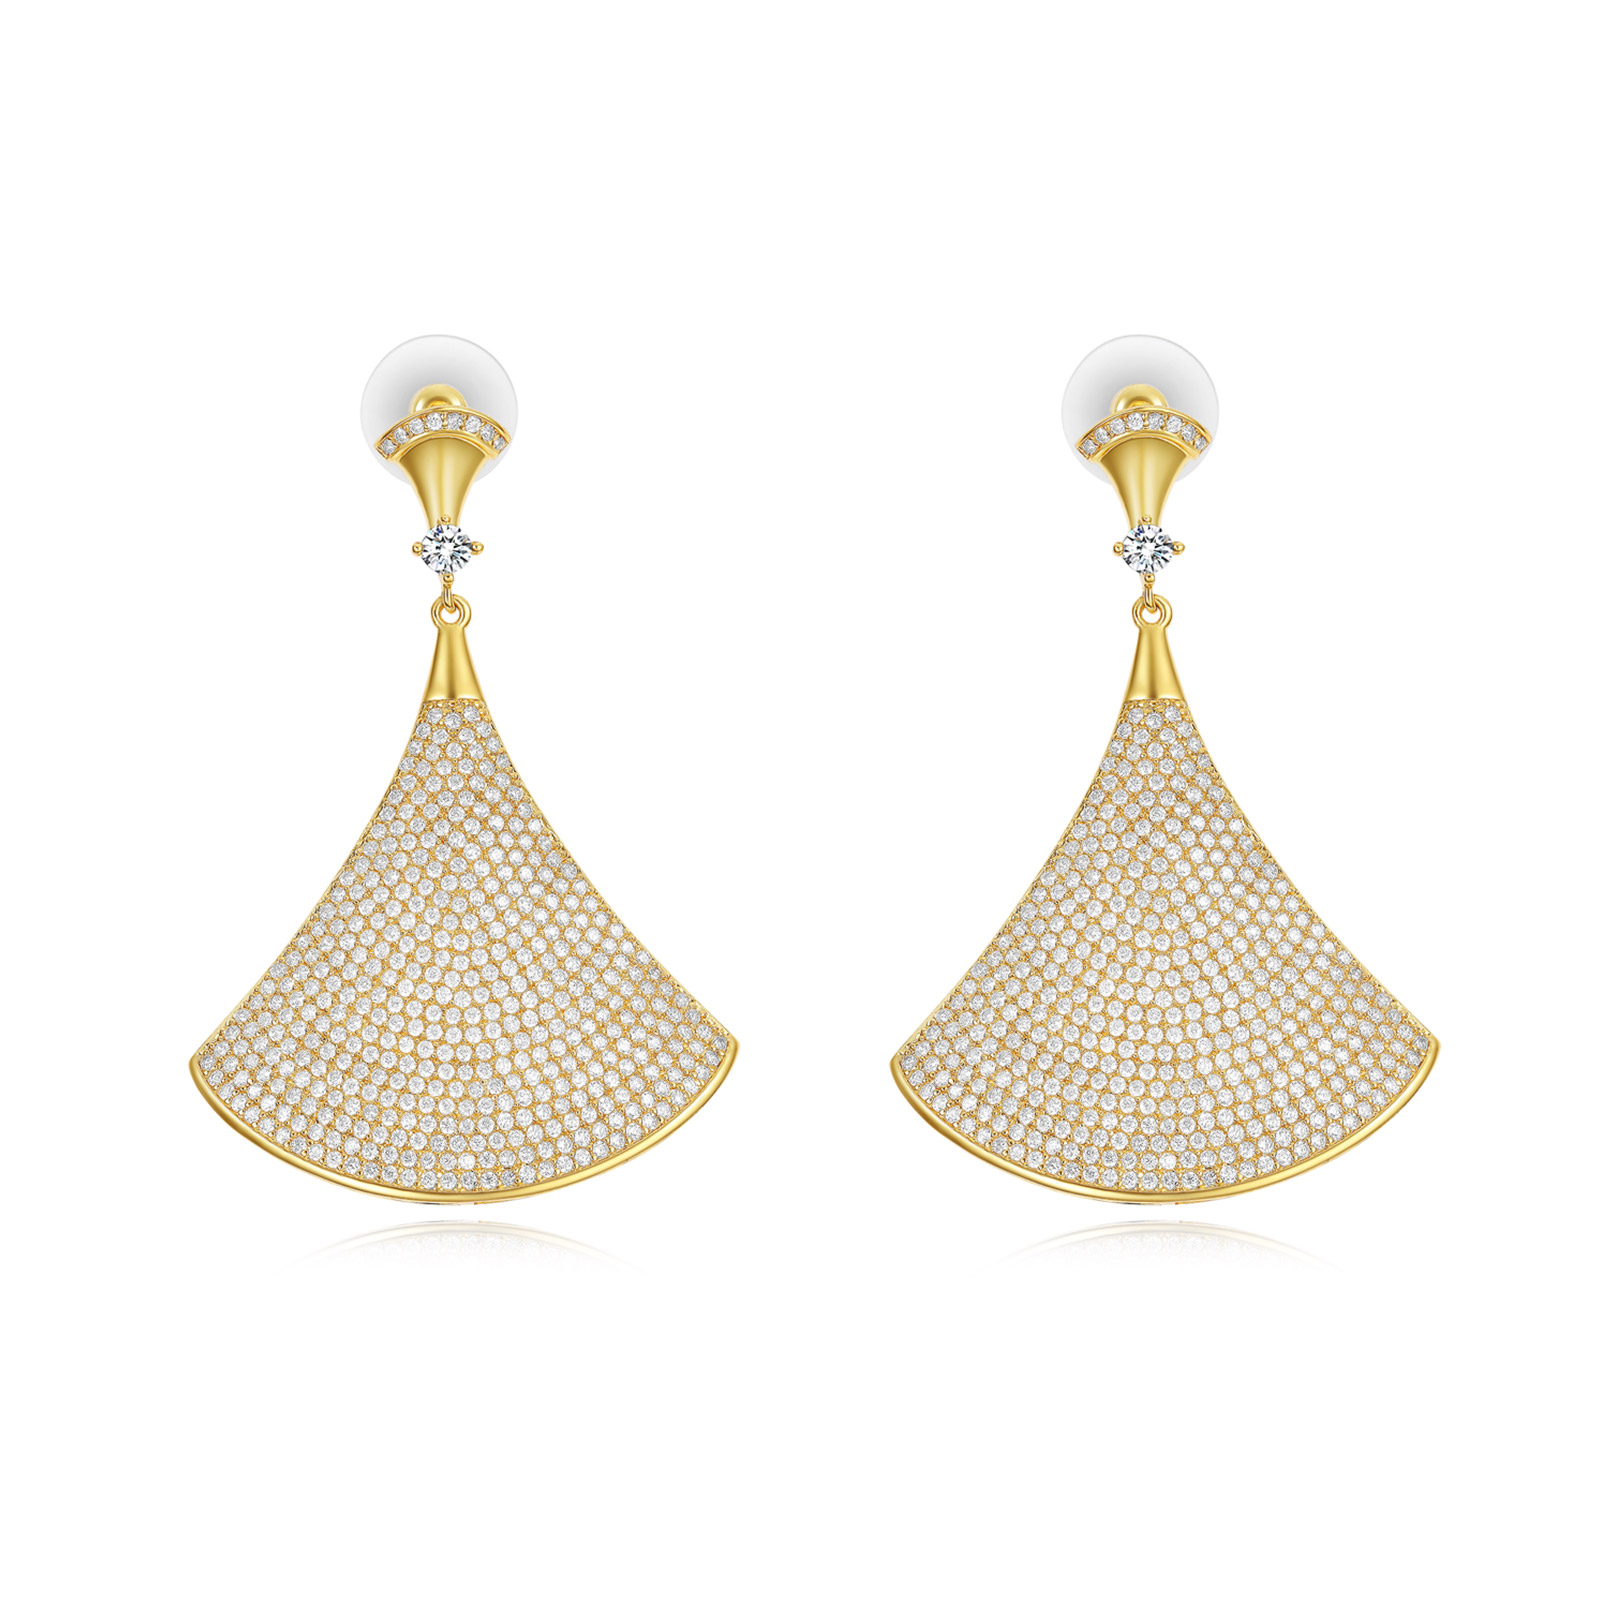 ziveg wear made online silver zirconia category buy daily earrings with swarovski india sterling